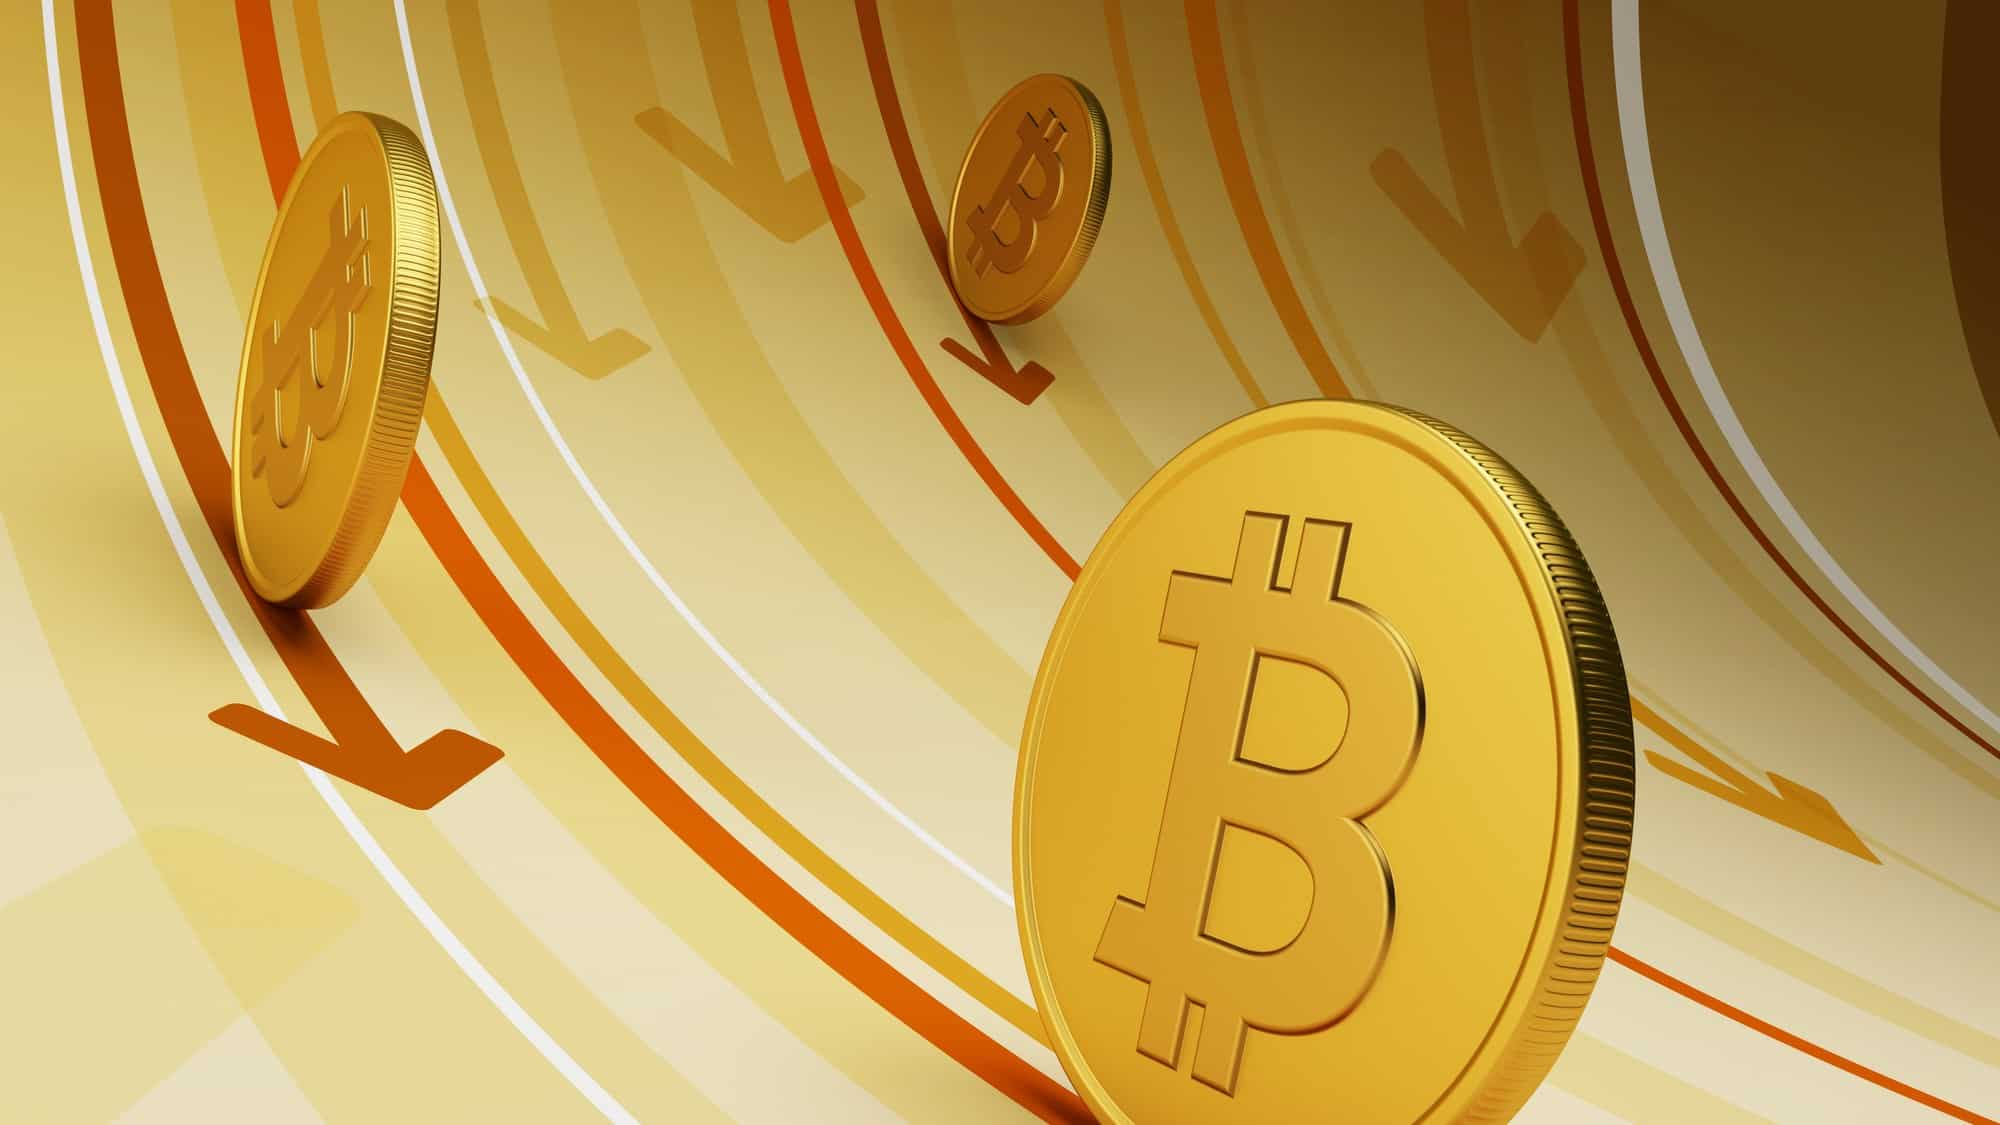 tumbling bitcoin price represented by declining arrows